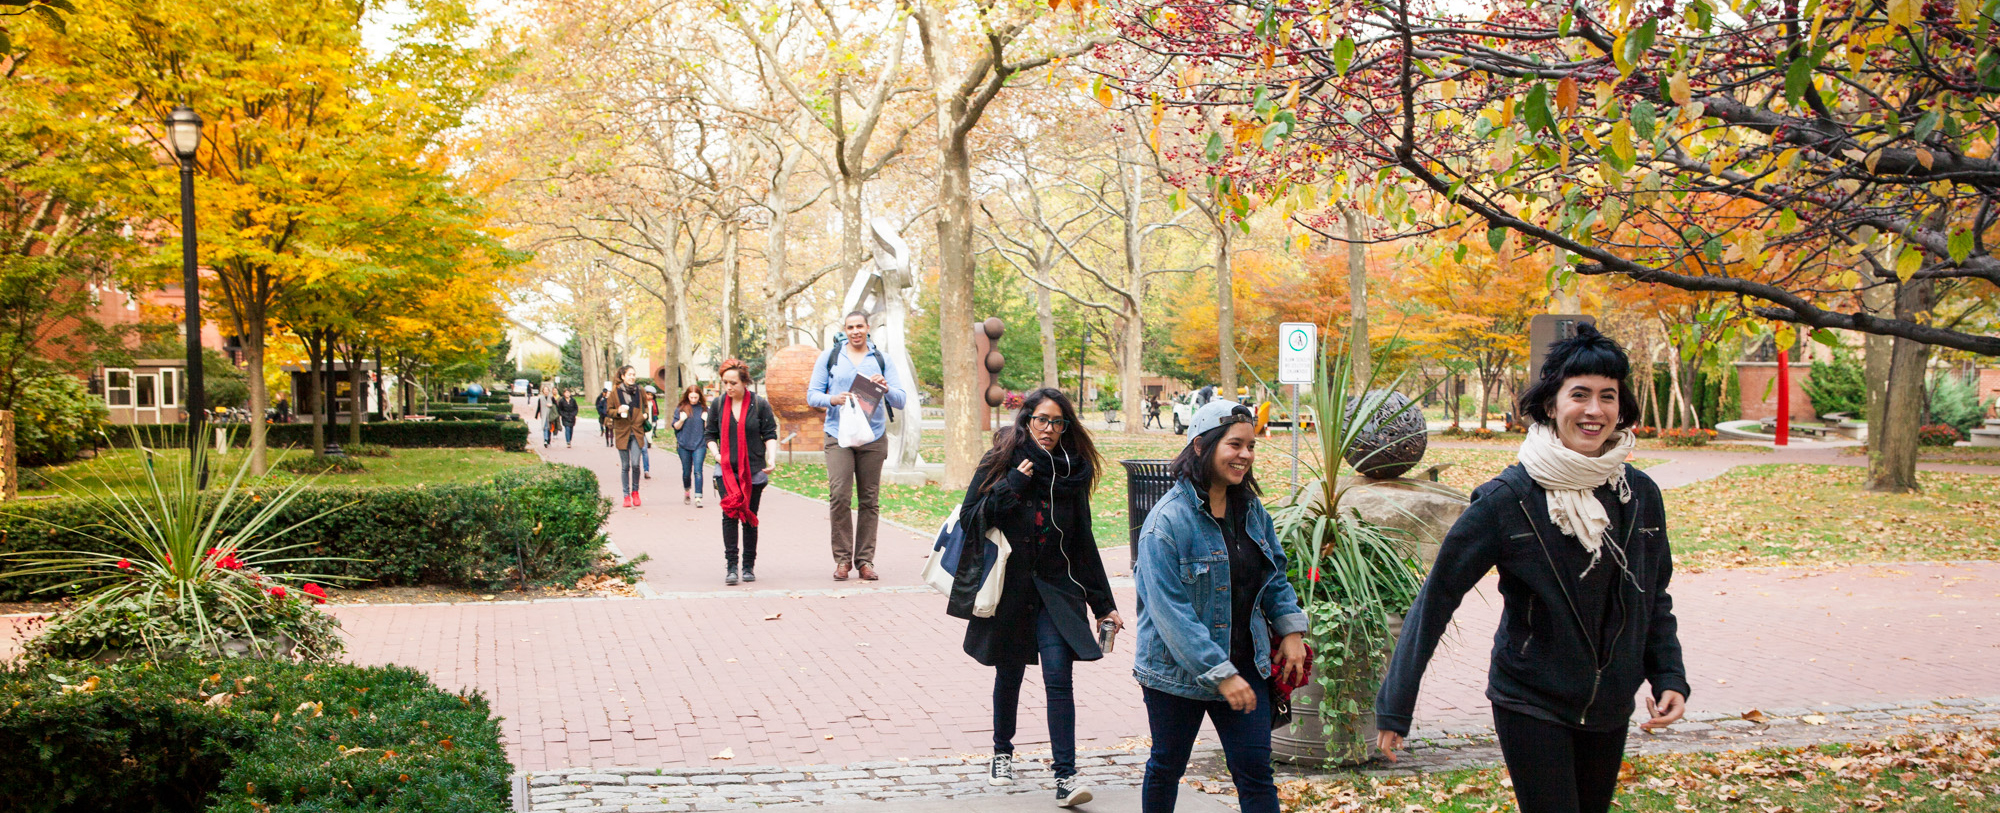 Pratt students walk through campus on a fall day